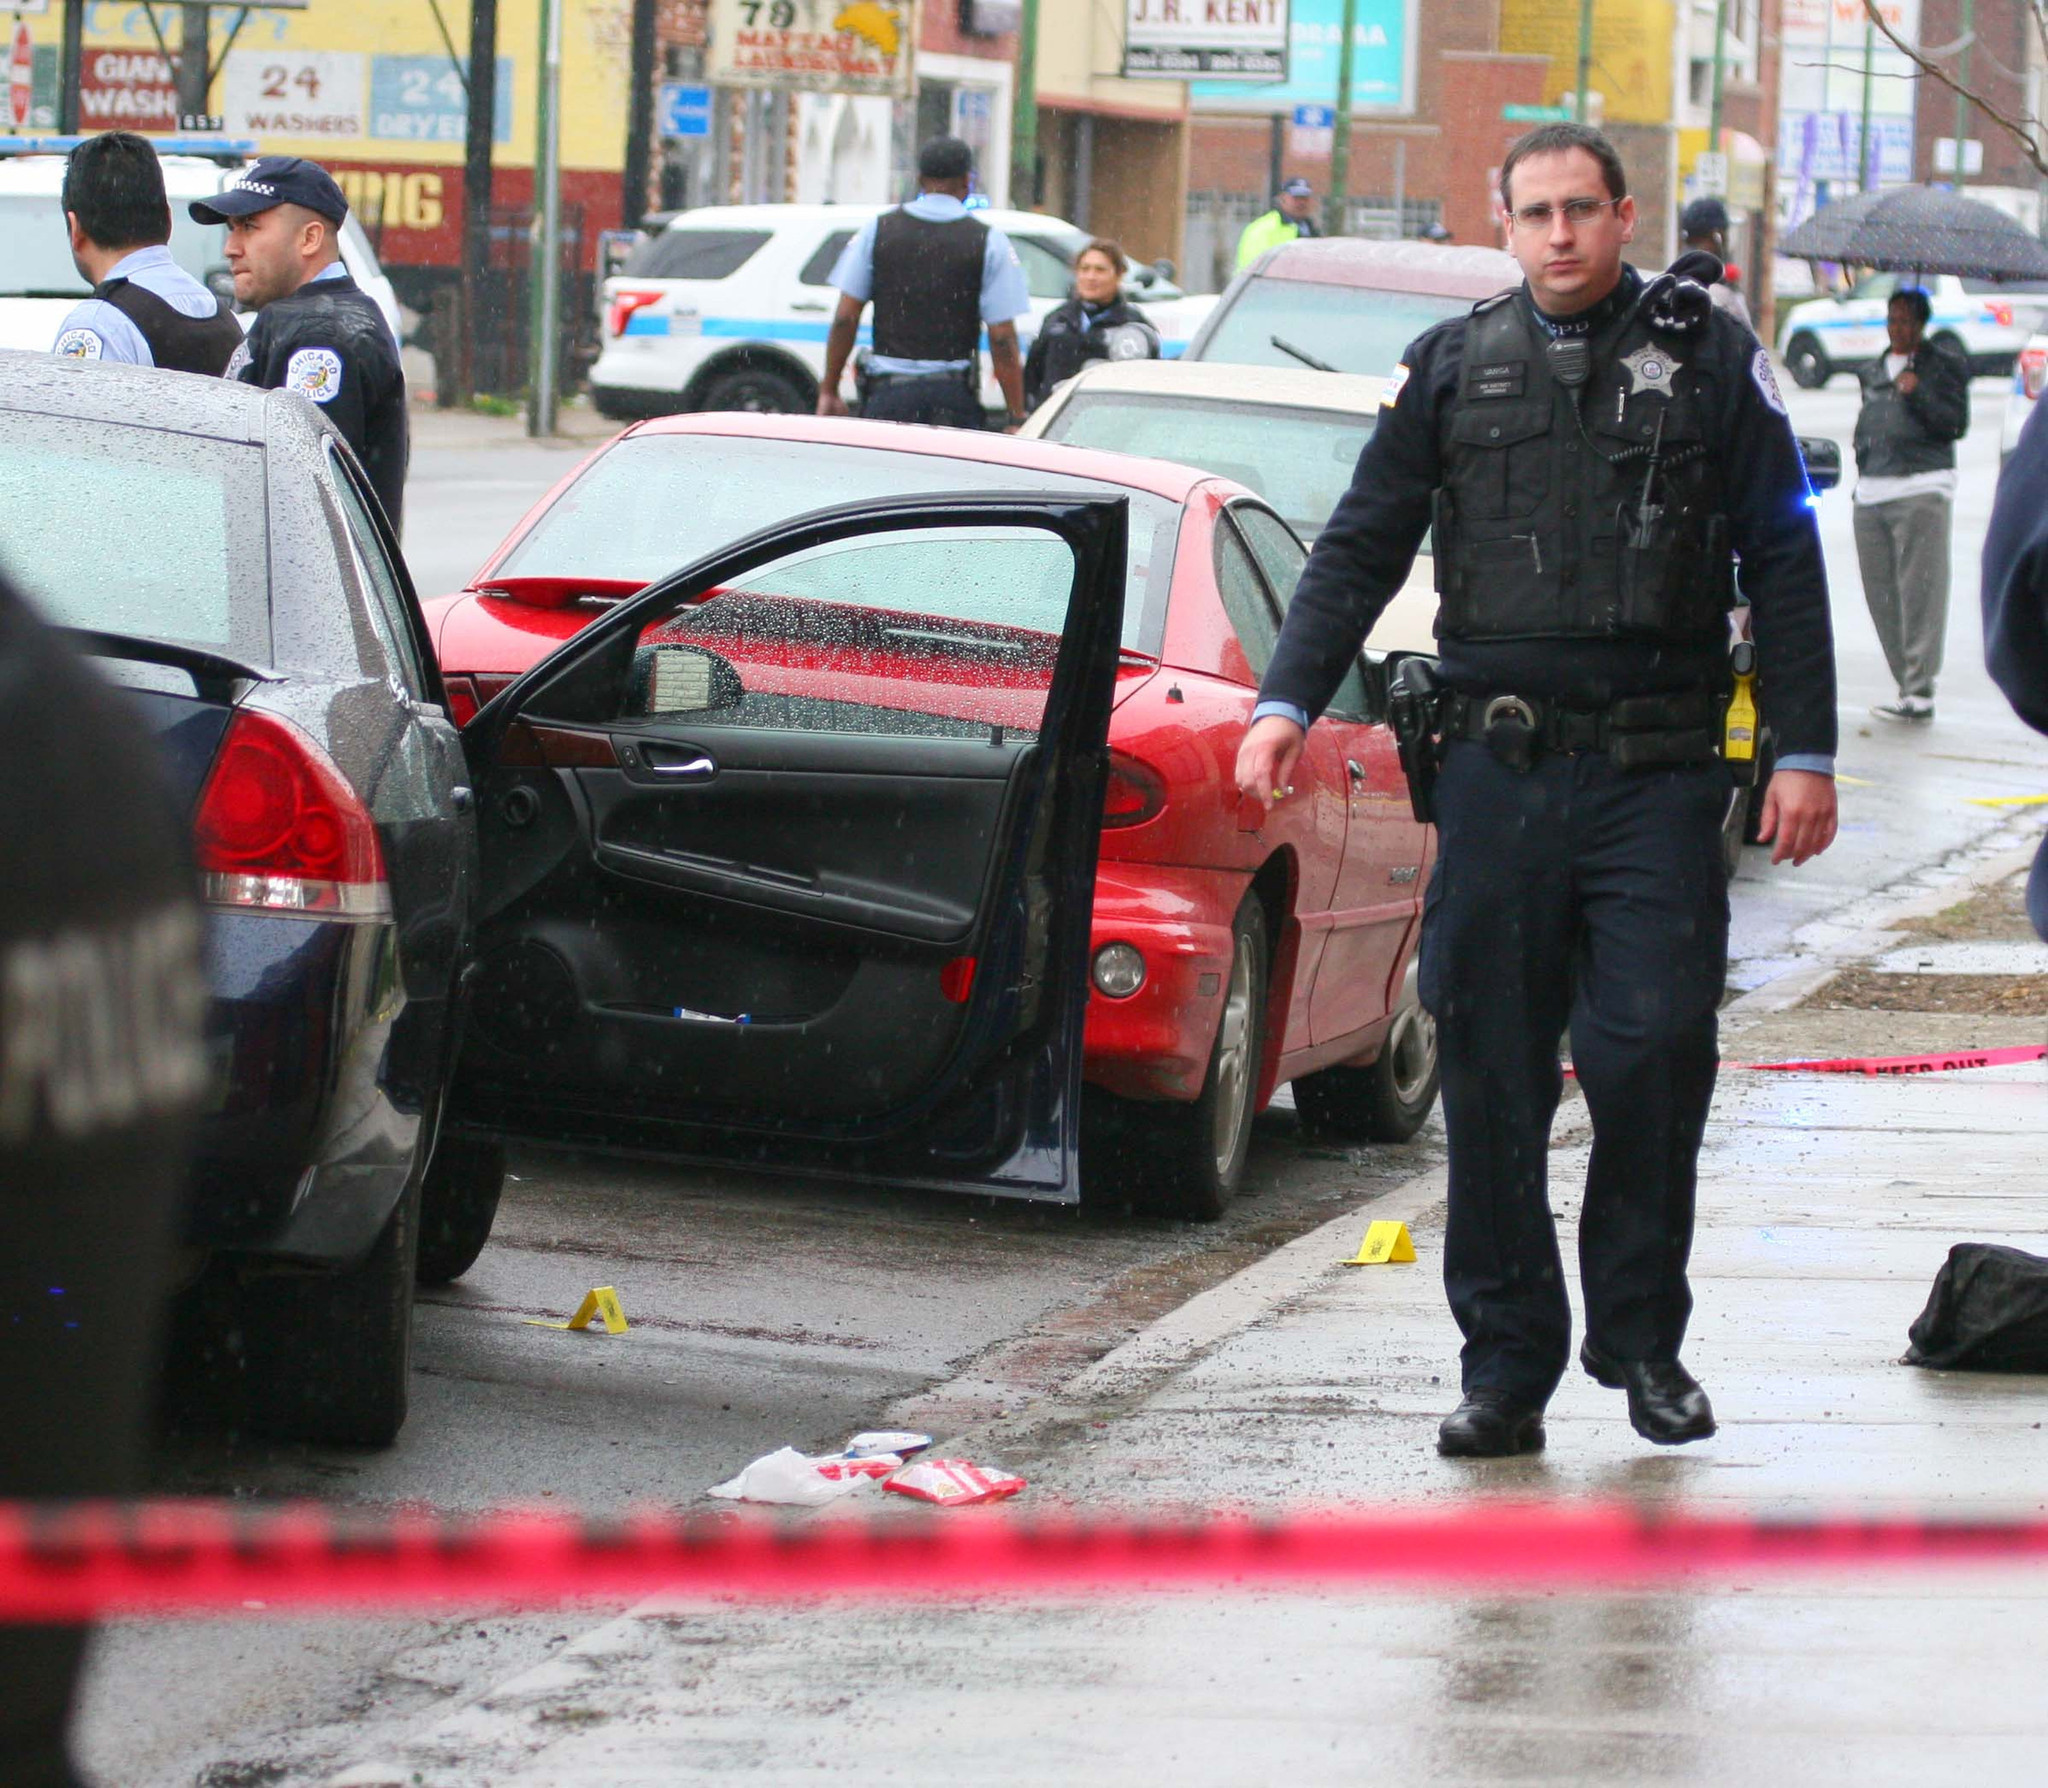 8 injured in shootings on West, South sides